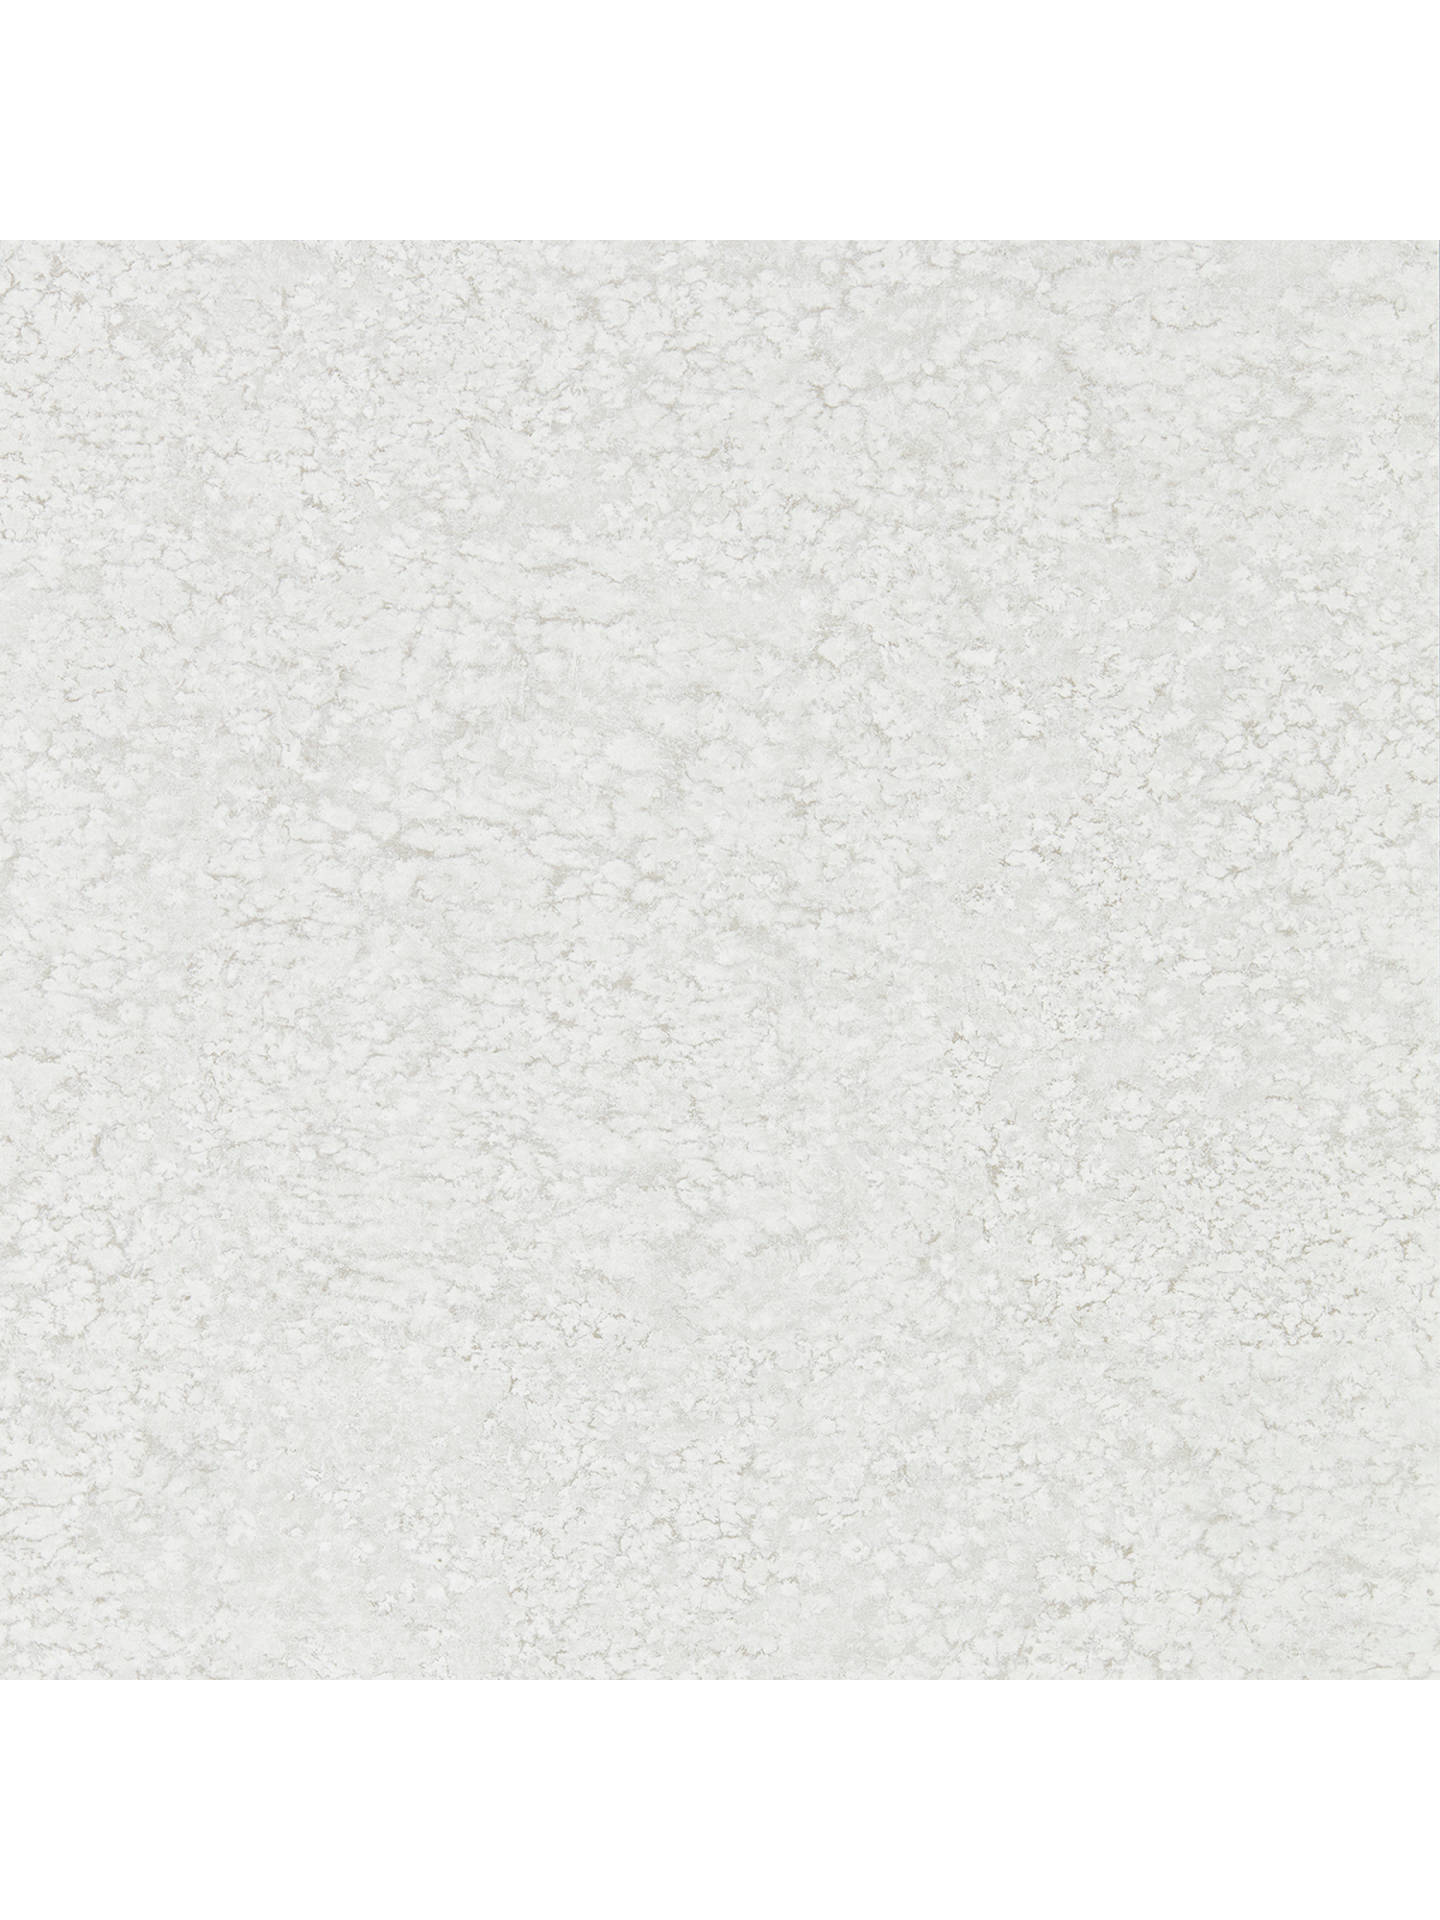 Buy Zoffany Weathered Stone Wallpaper, Plain Chalk ZKEM312638 Online at johnlewis.com